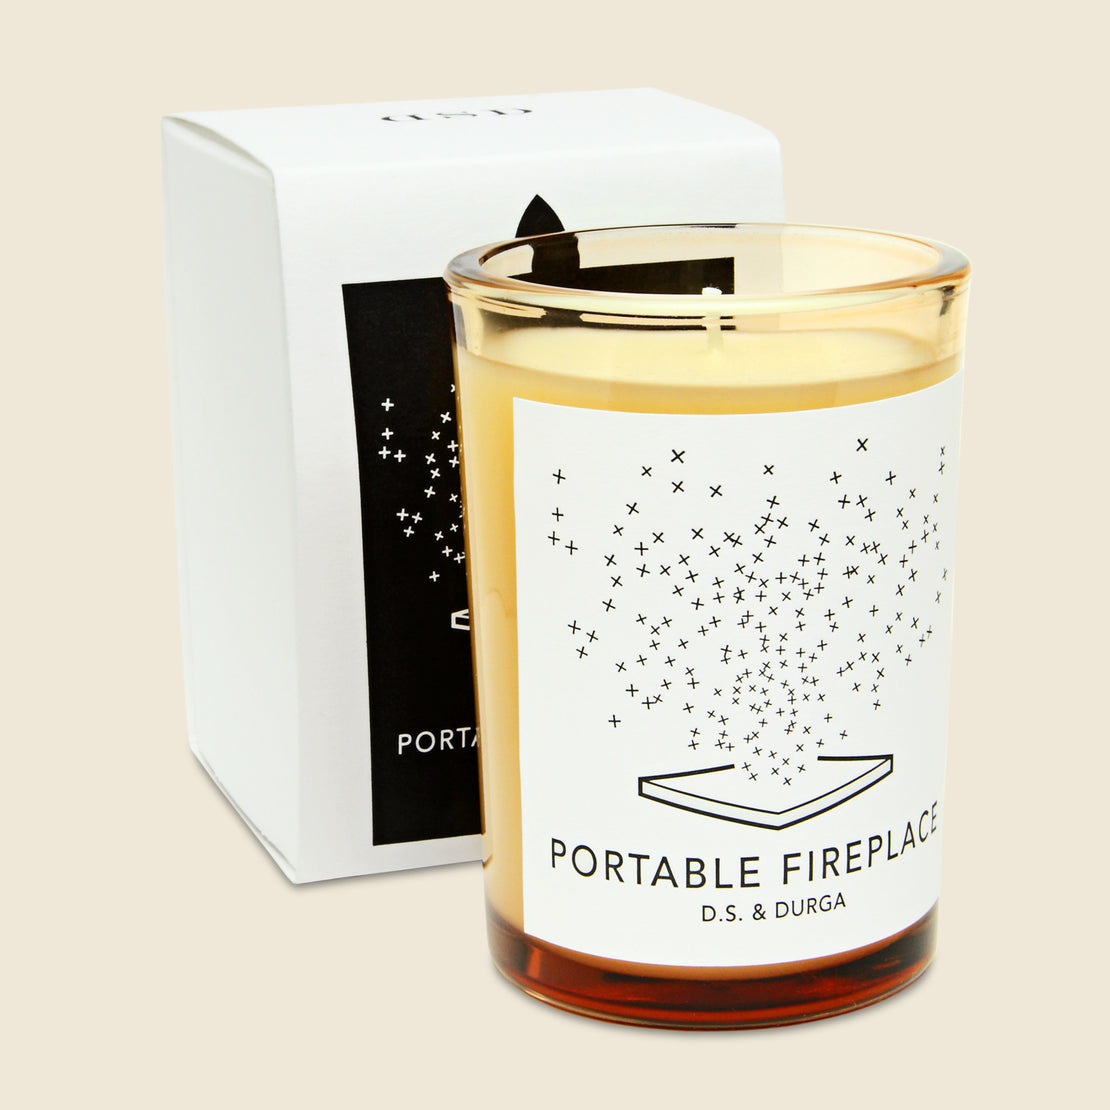 D.S. & Durga Candle - Portable Fireplace